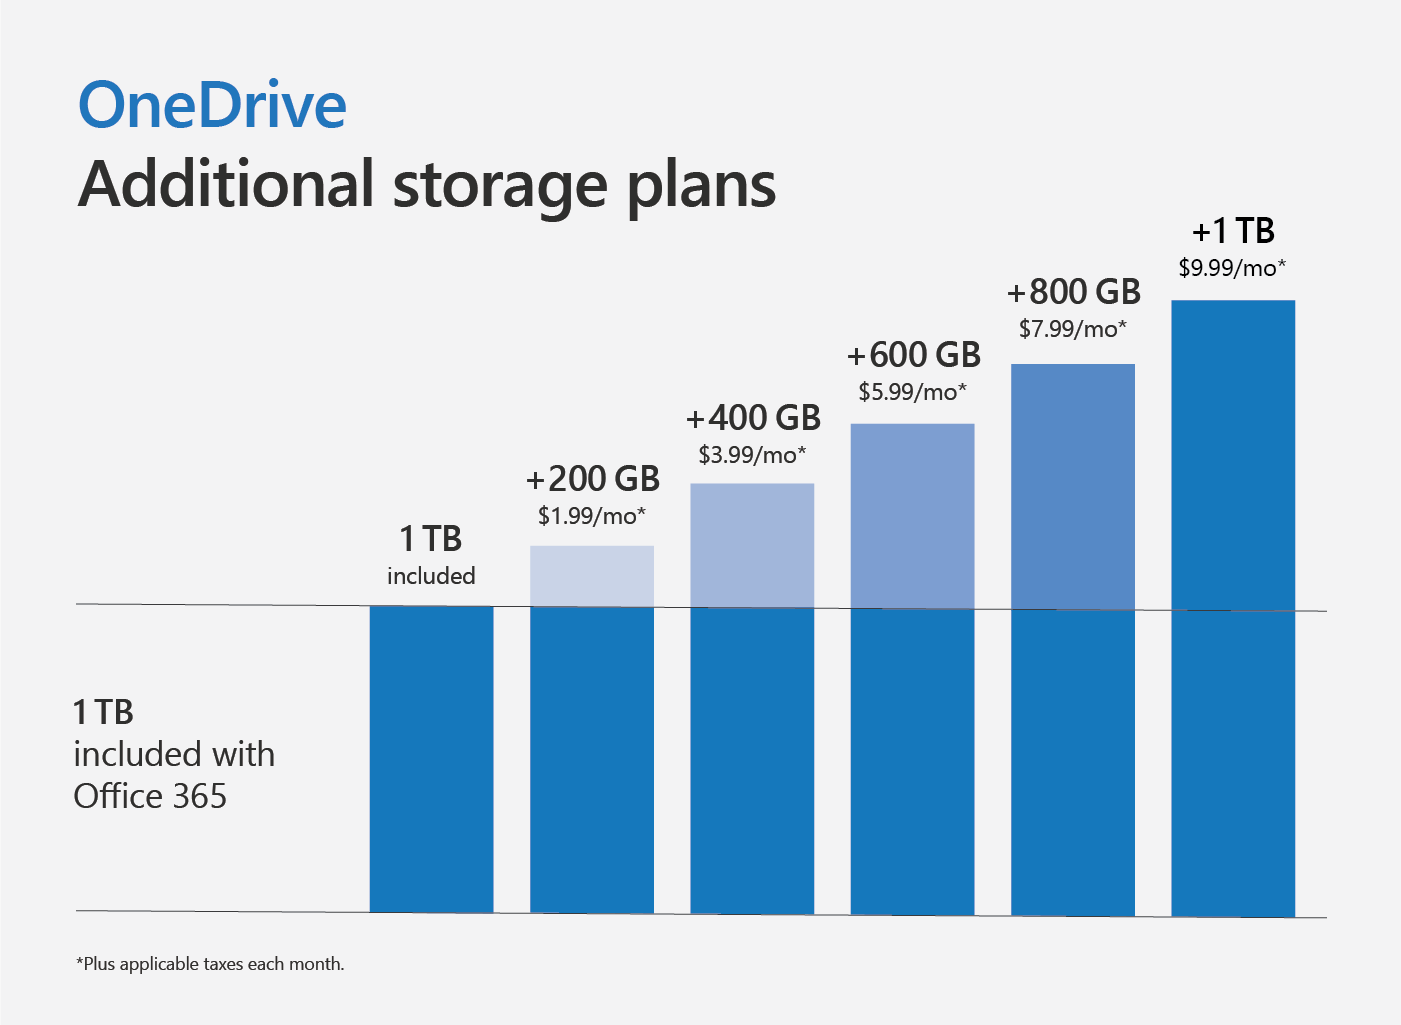 Graph showing additional storage plan for OneDrive